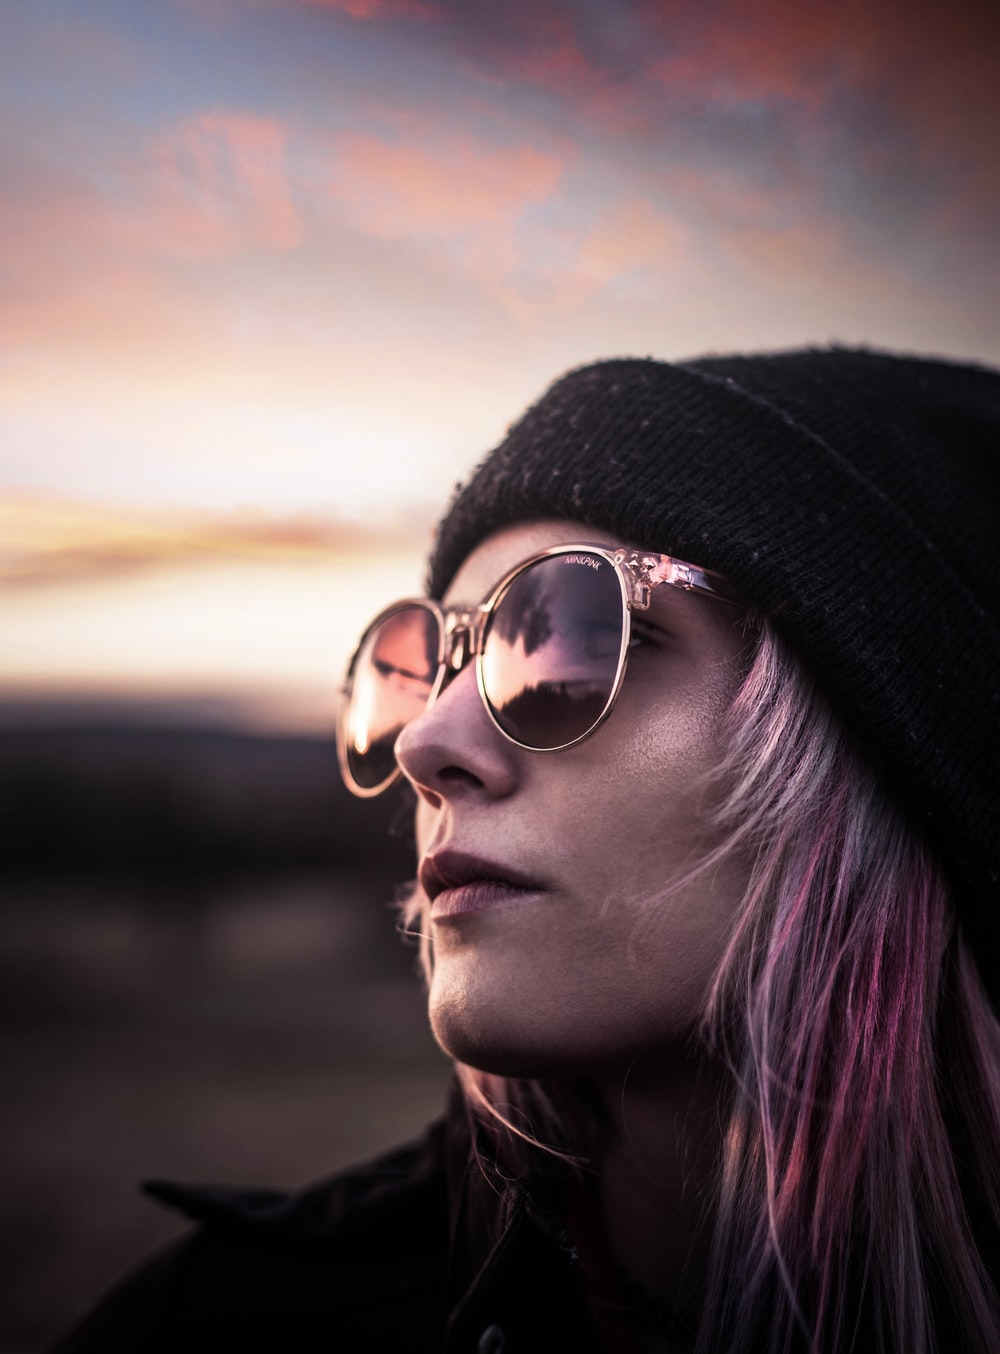 woman with black knit cap with sunglasses